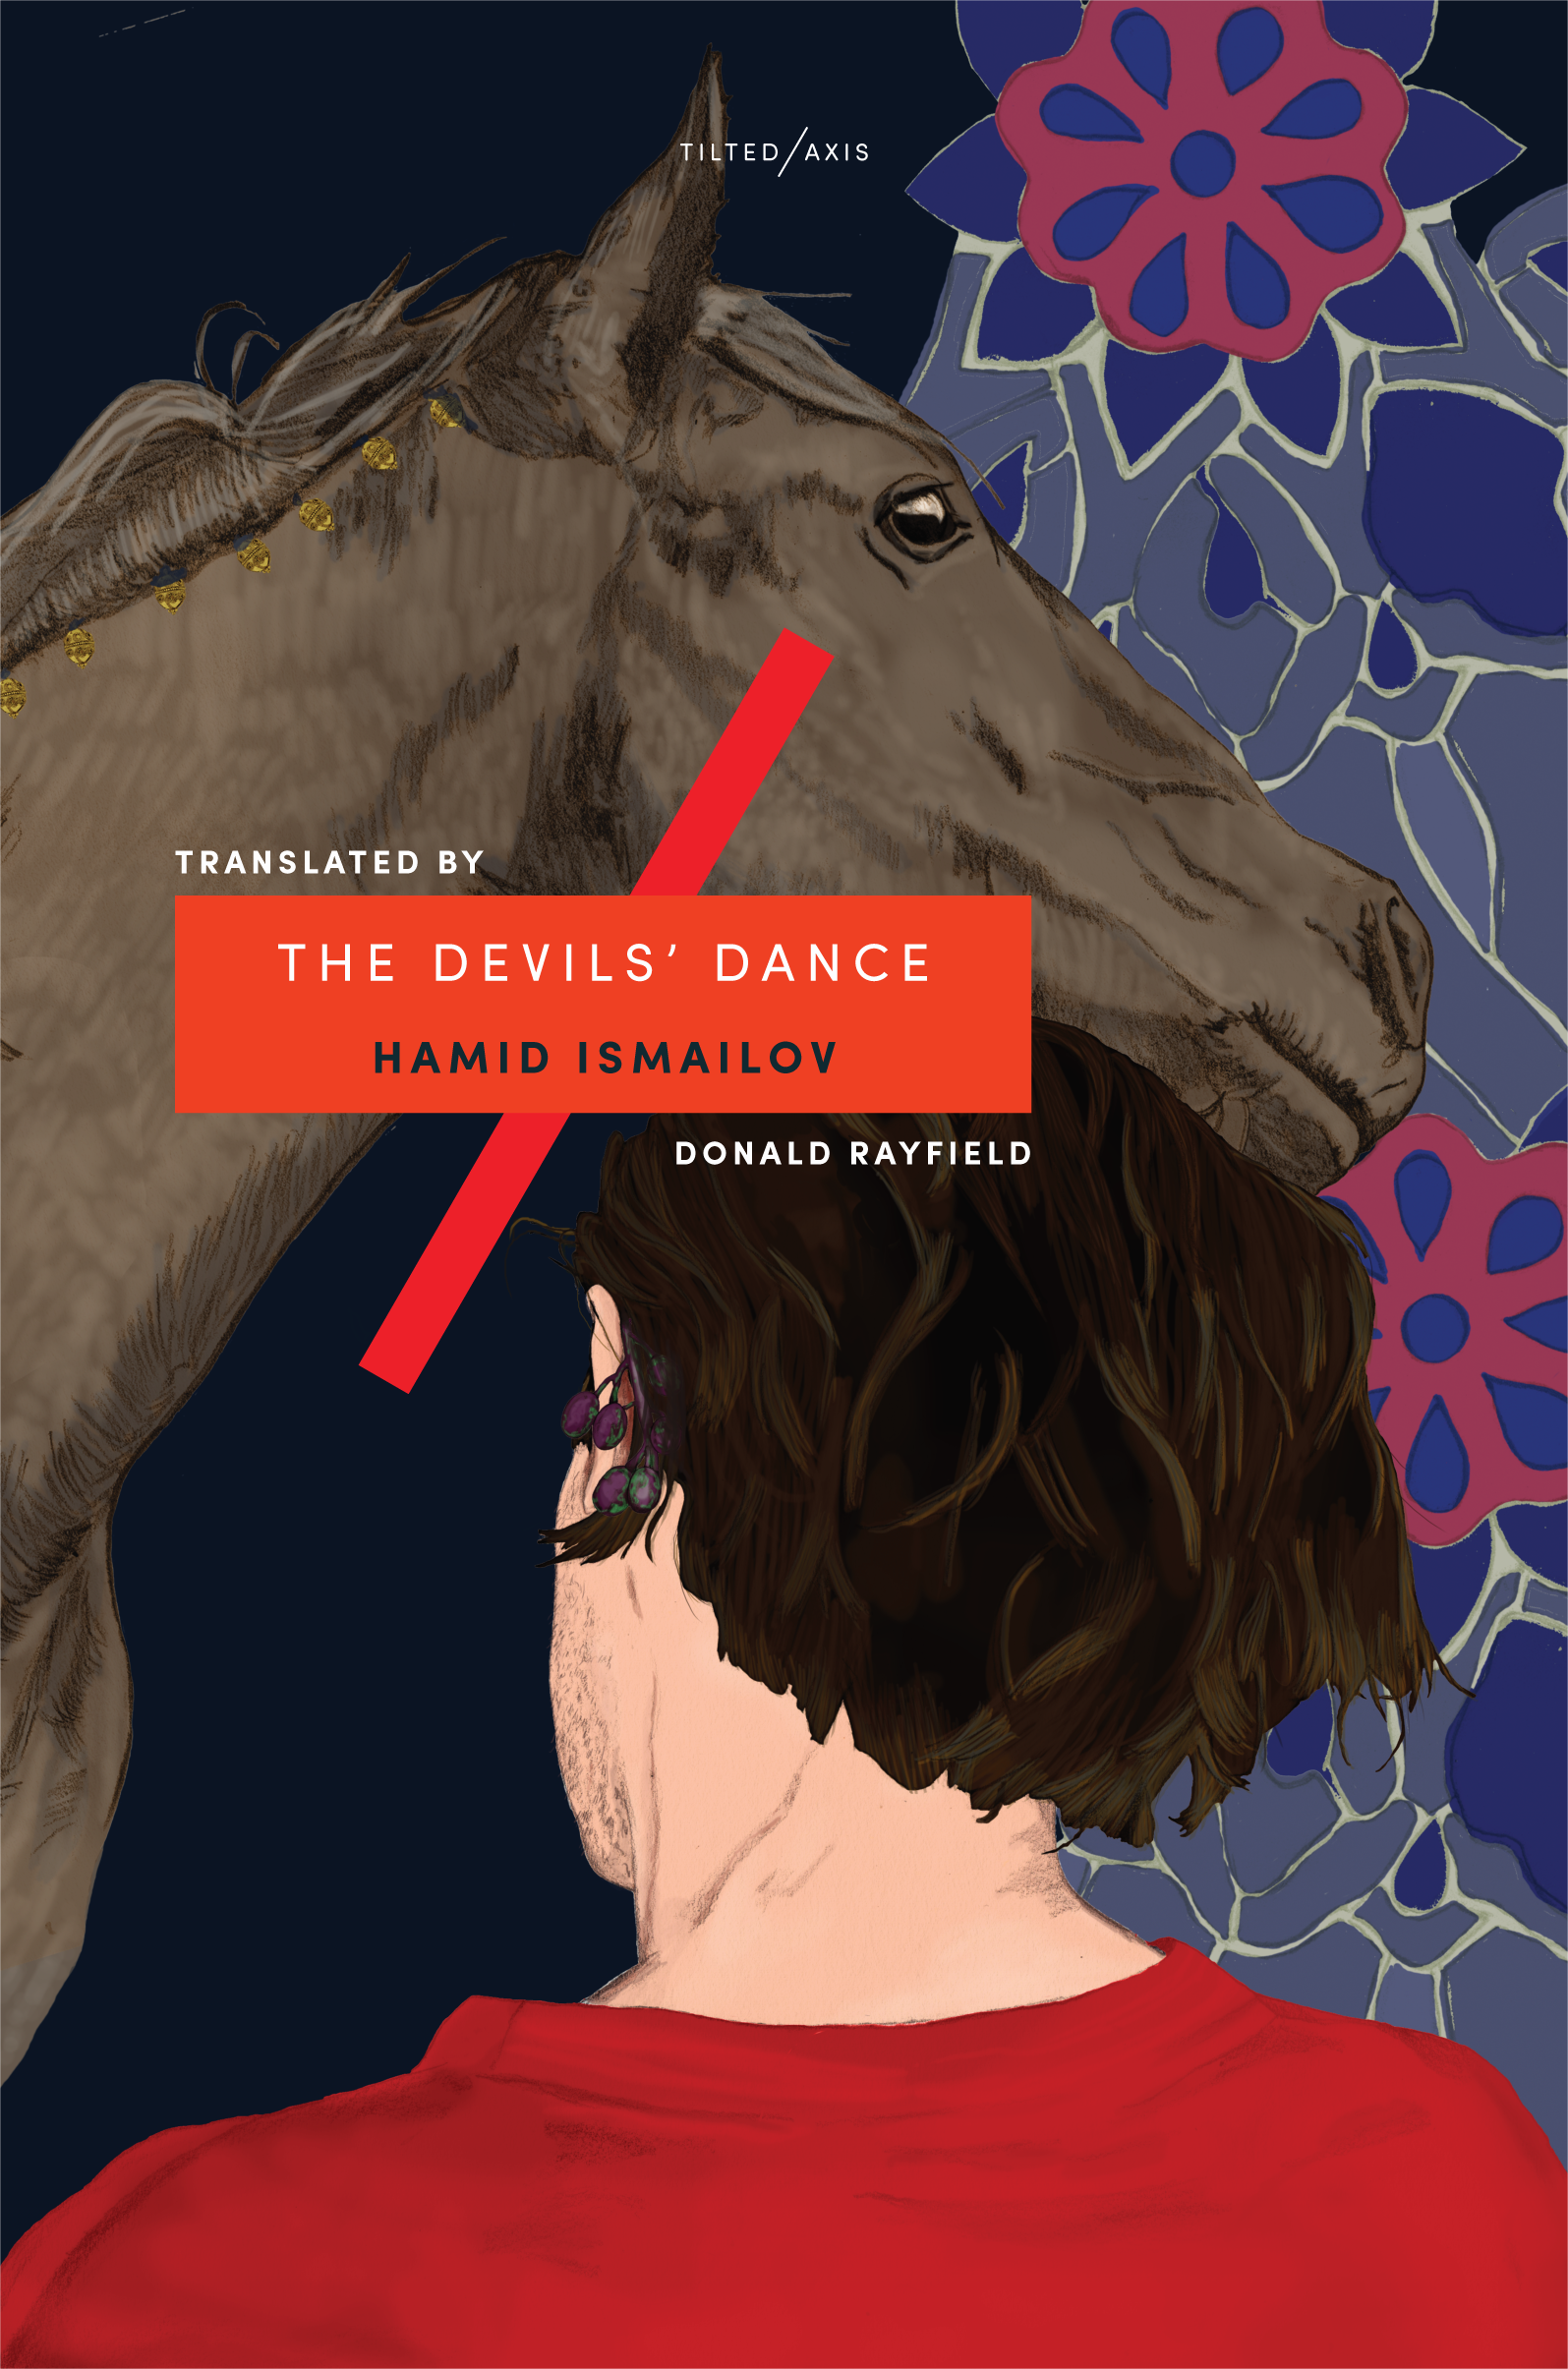 The Devils' Dance